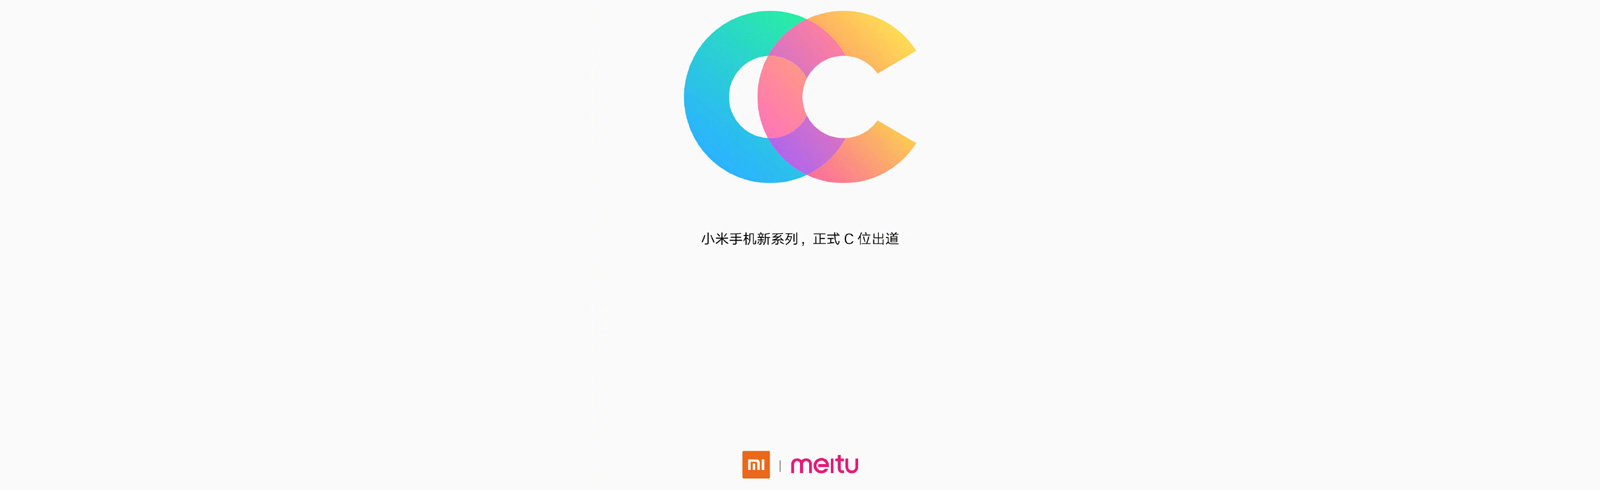 Meitu confirms it will announce with Xiaomi a pair of smartphones from the new CC series